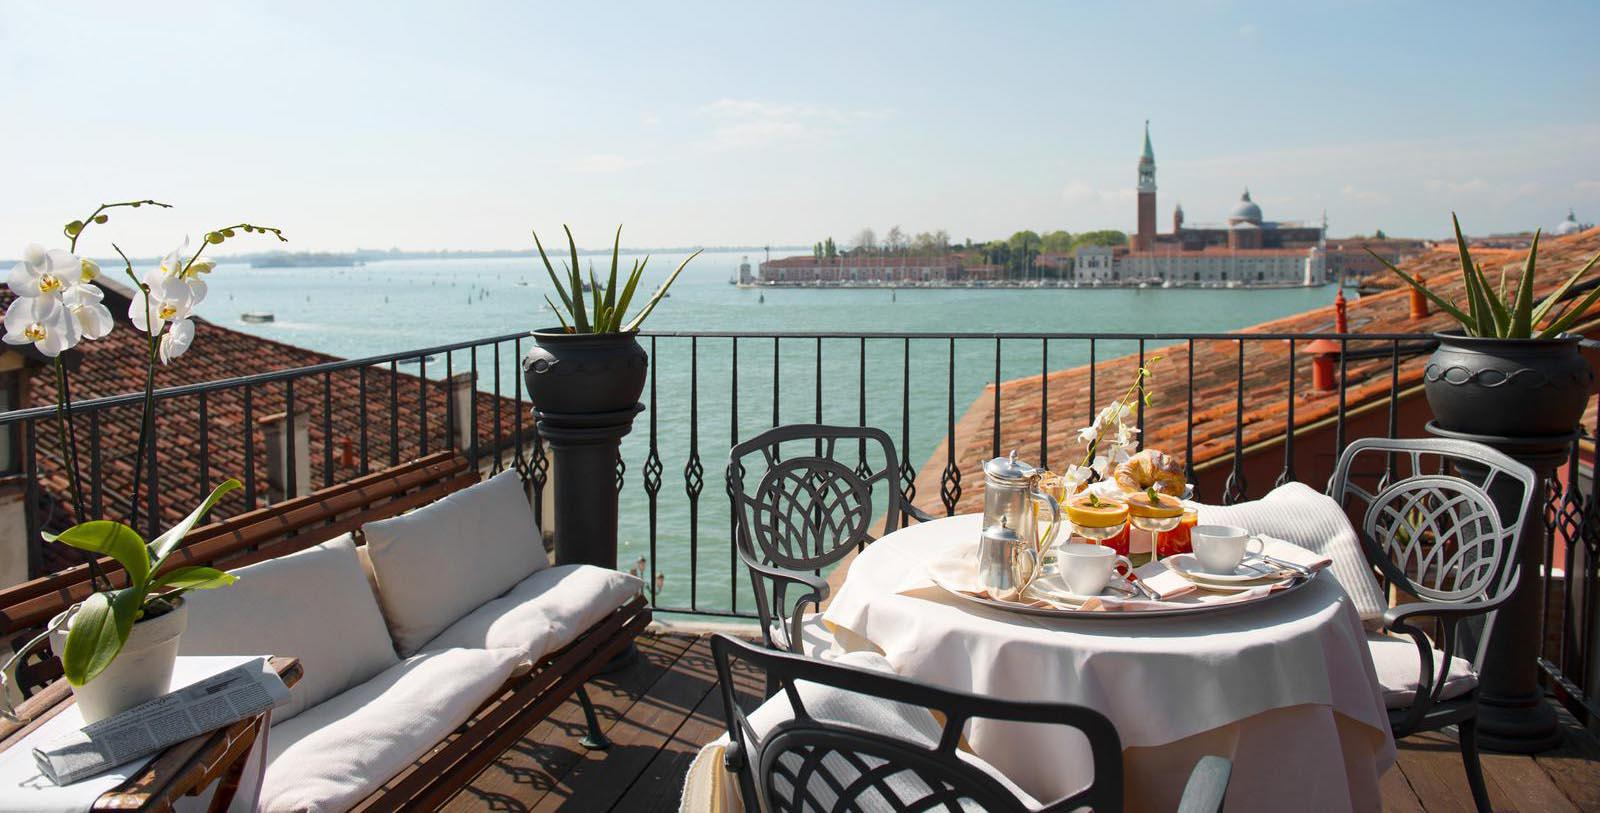 Image of Outdoor Dining on Balcony Metropole Hotel, 1500, Member of Historic Hotels Worldwide, in Venice, Italy, Hot Deals